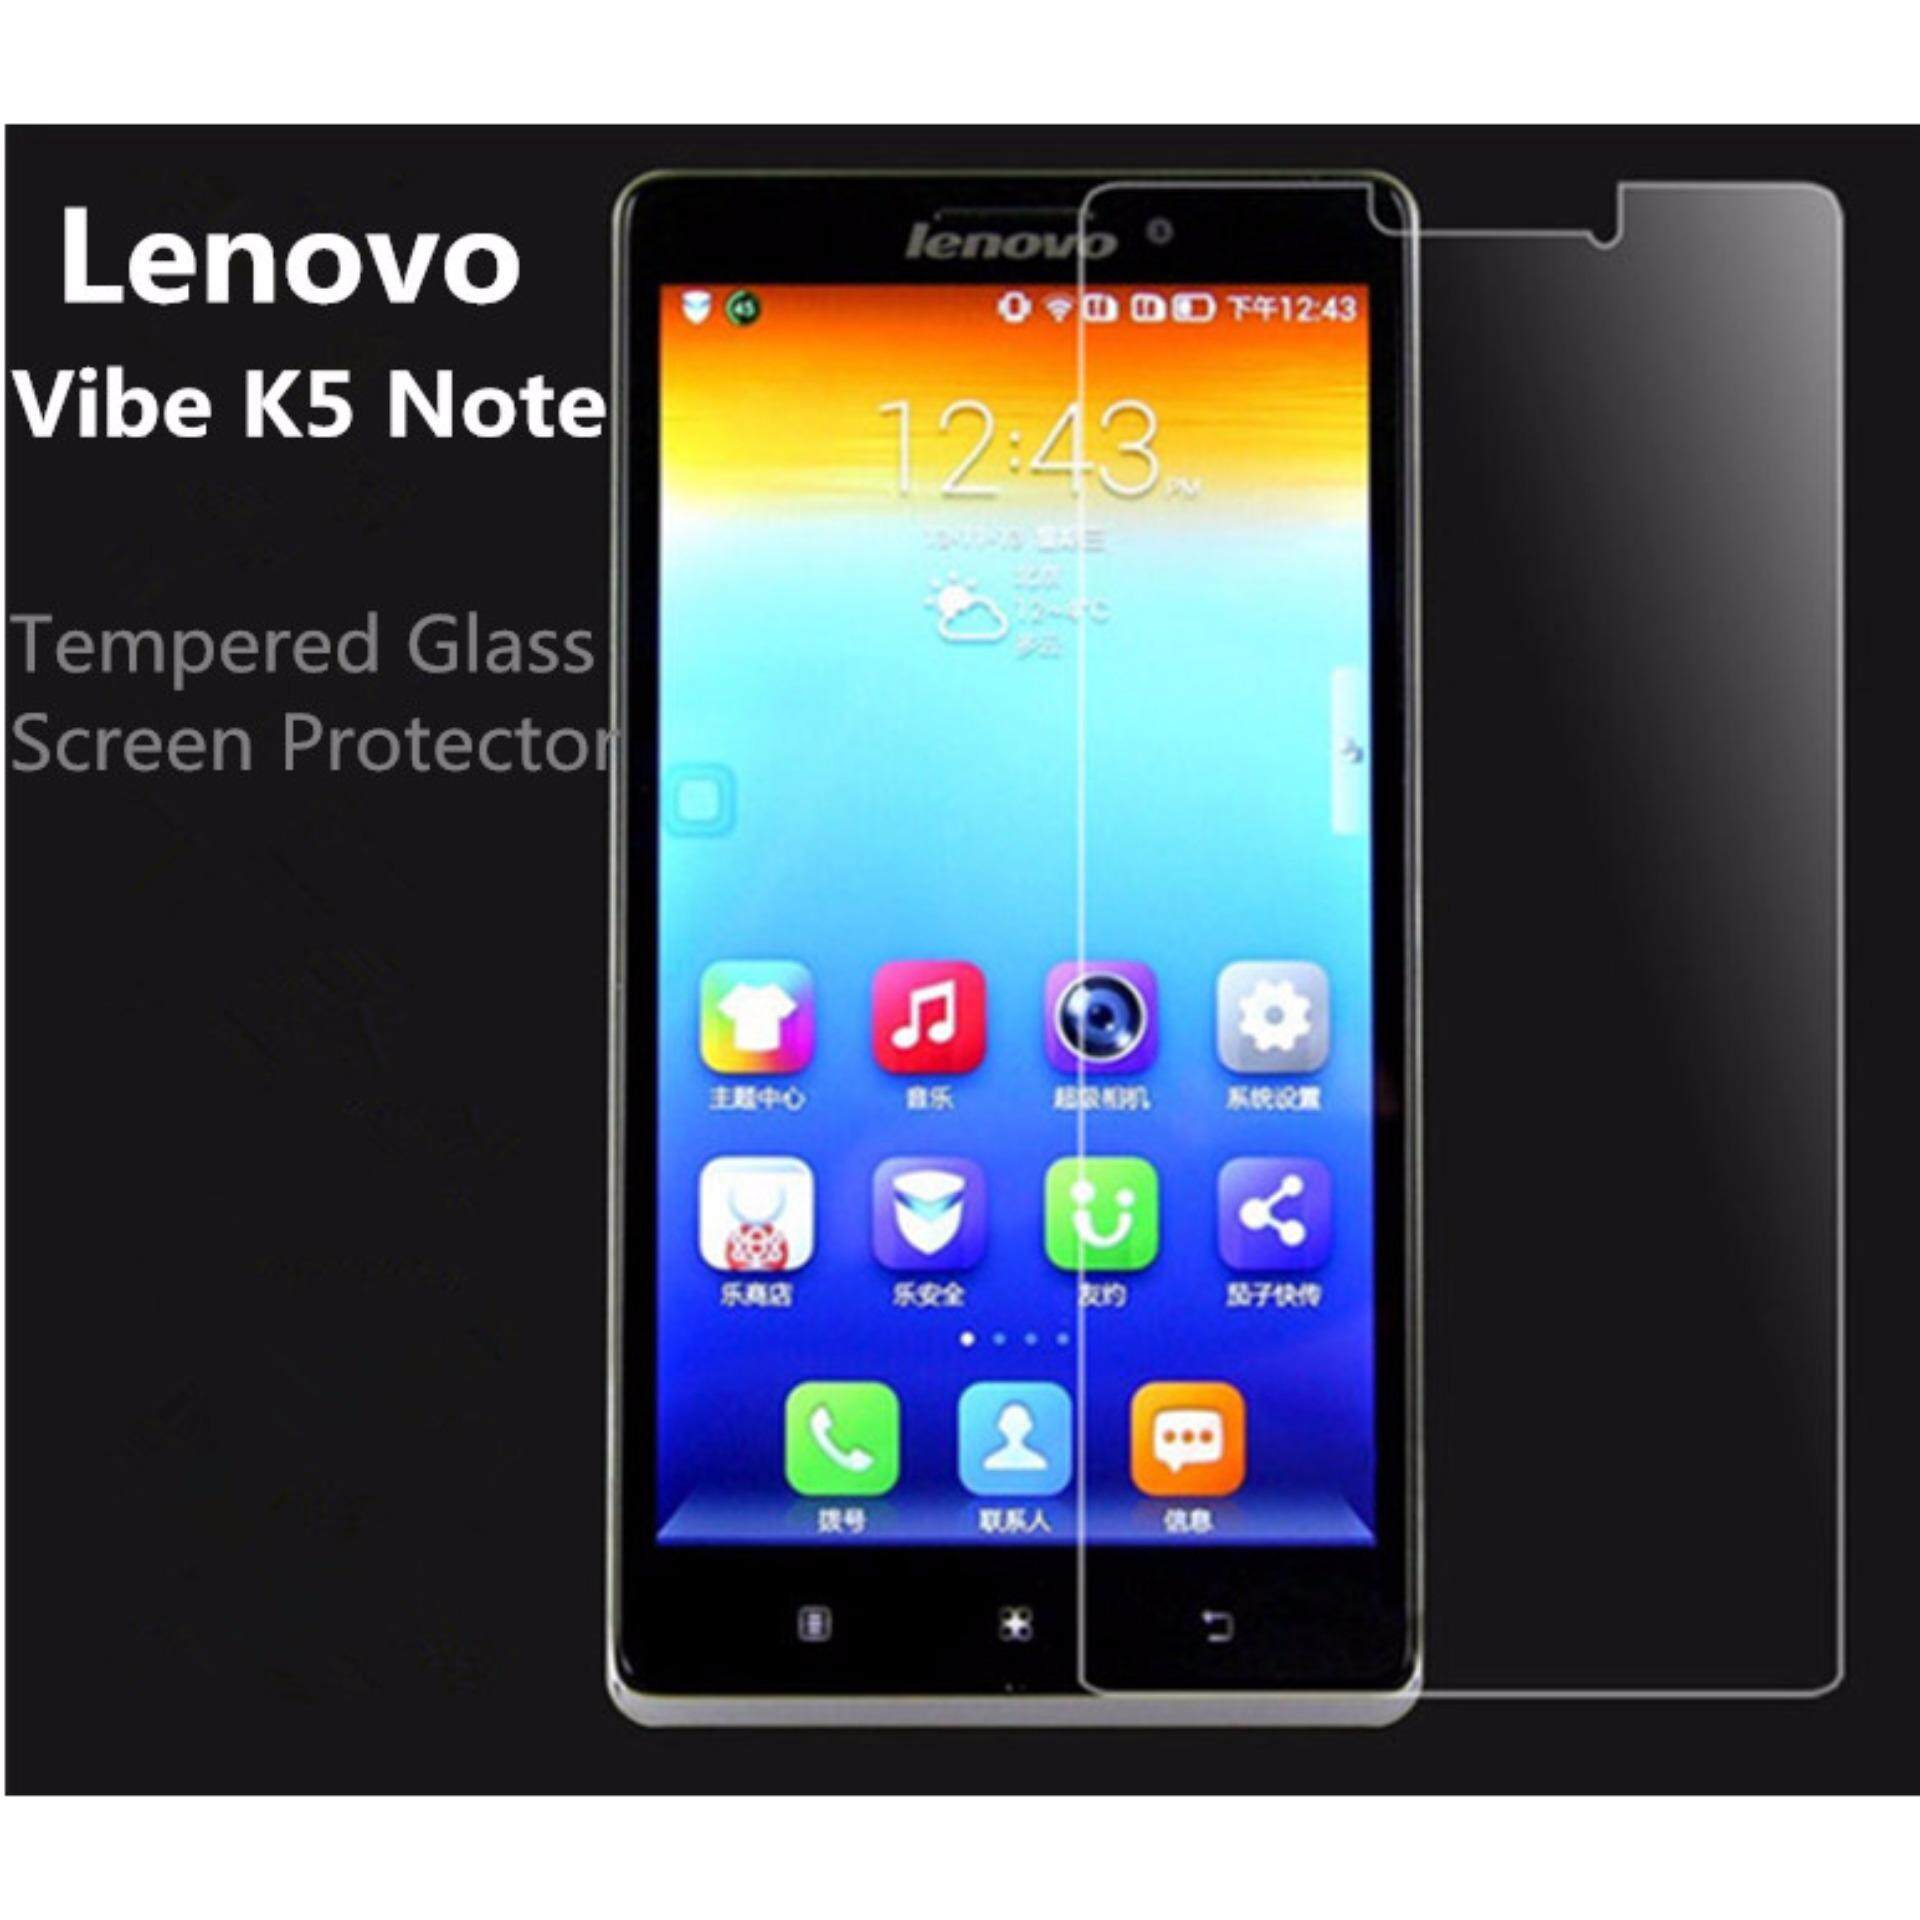 Lenovo Vibe K5 Note Tempered Glass Screen Protector 9H Round Edges